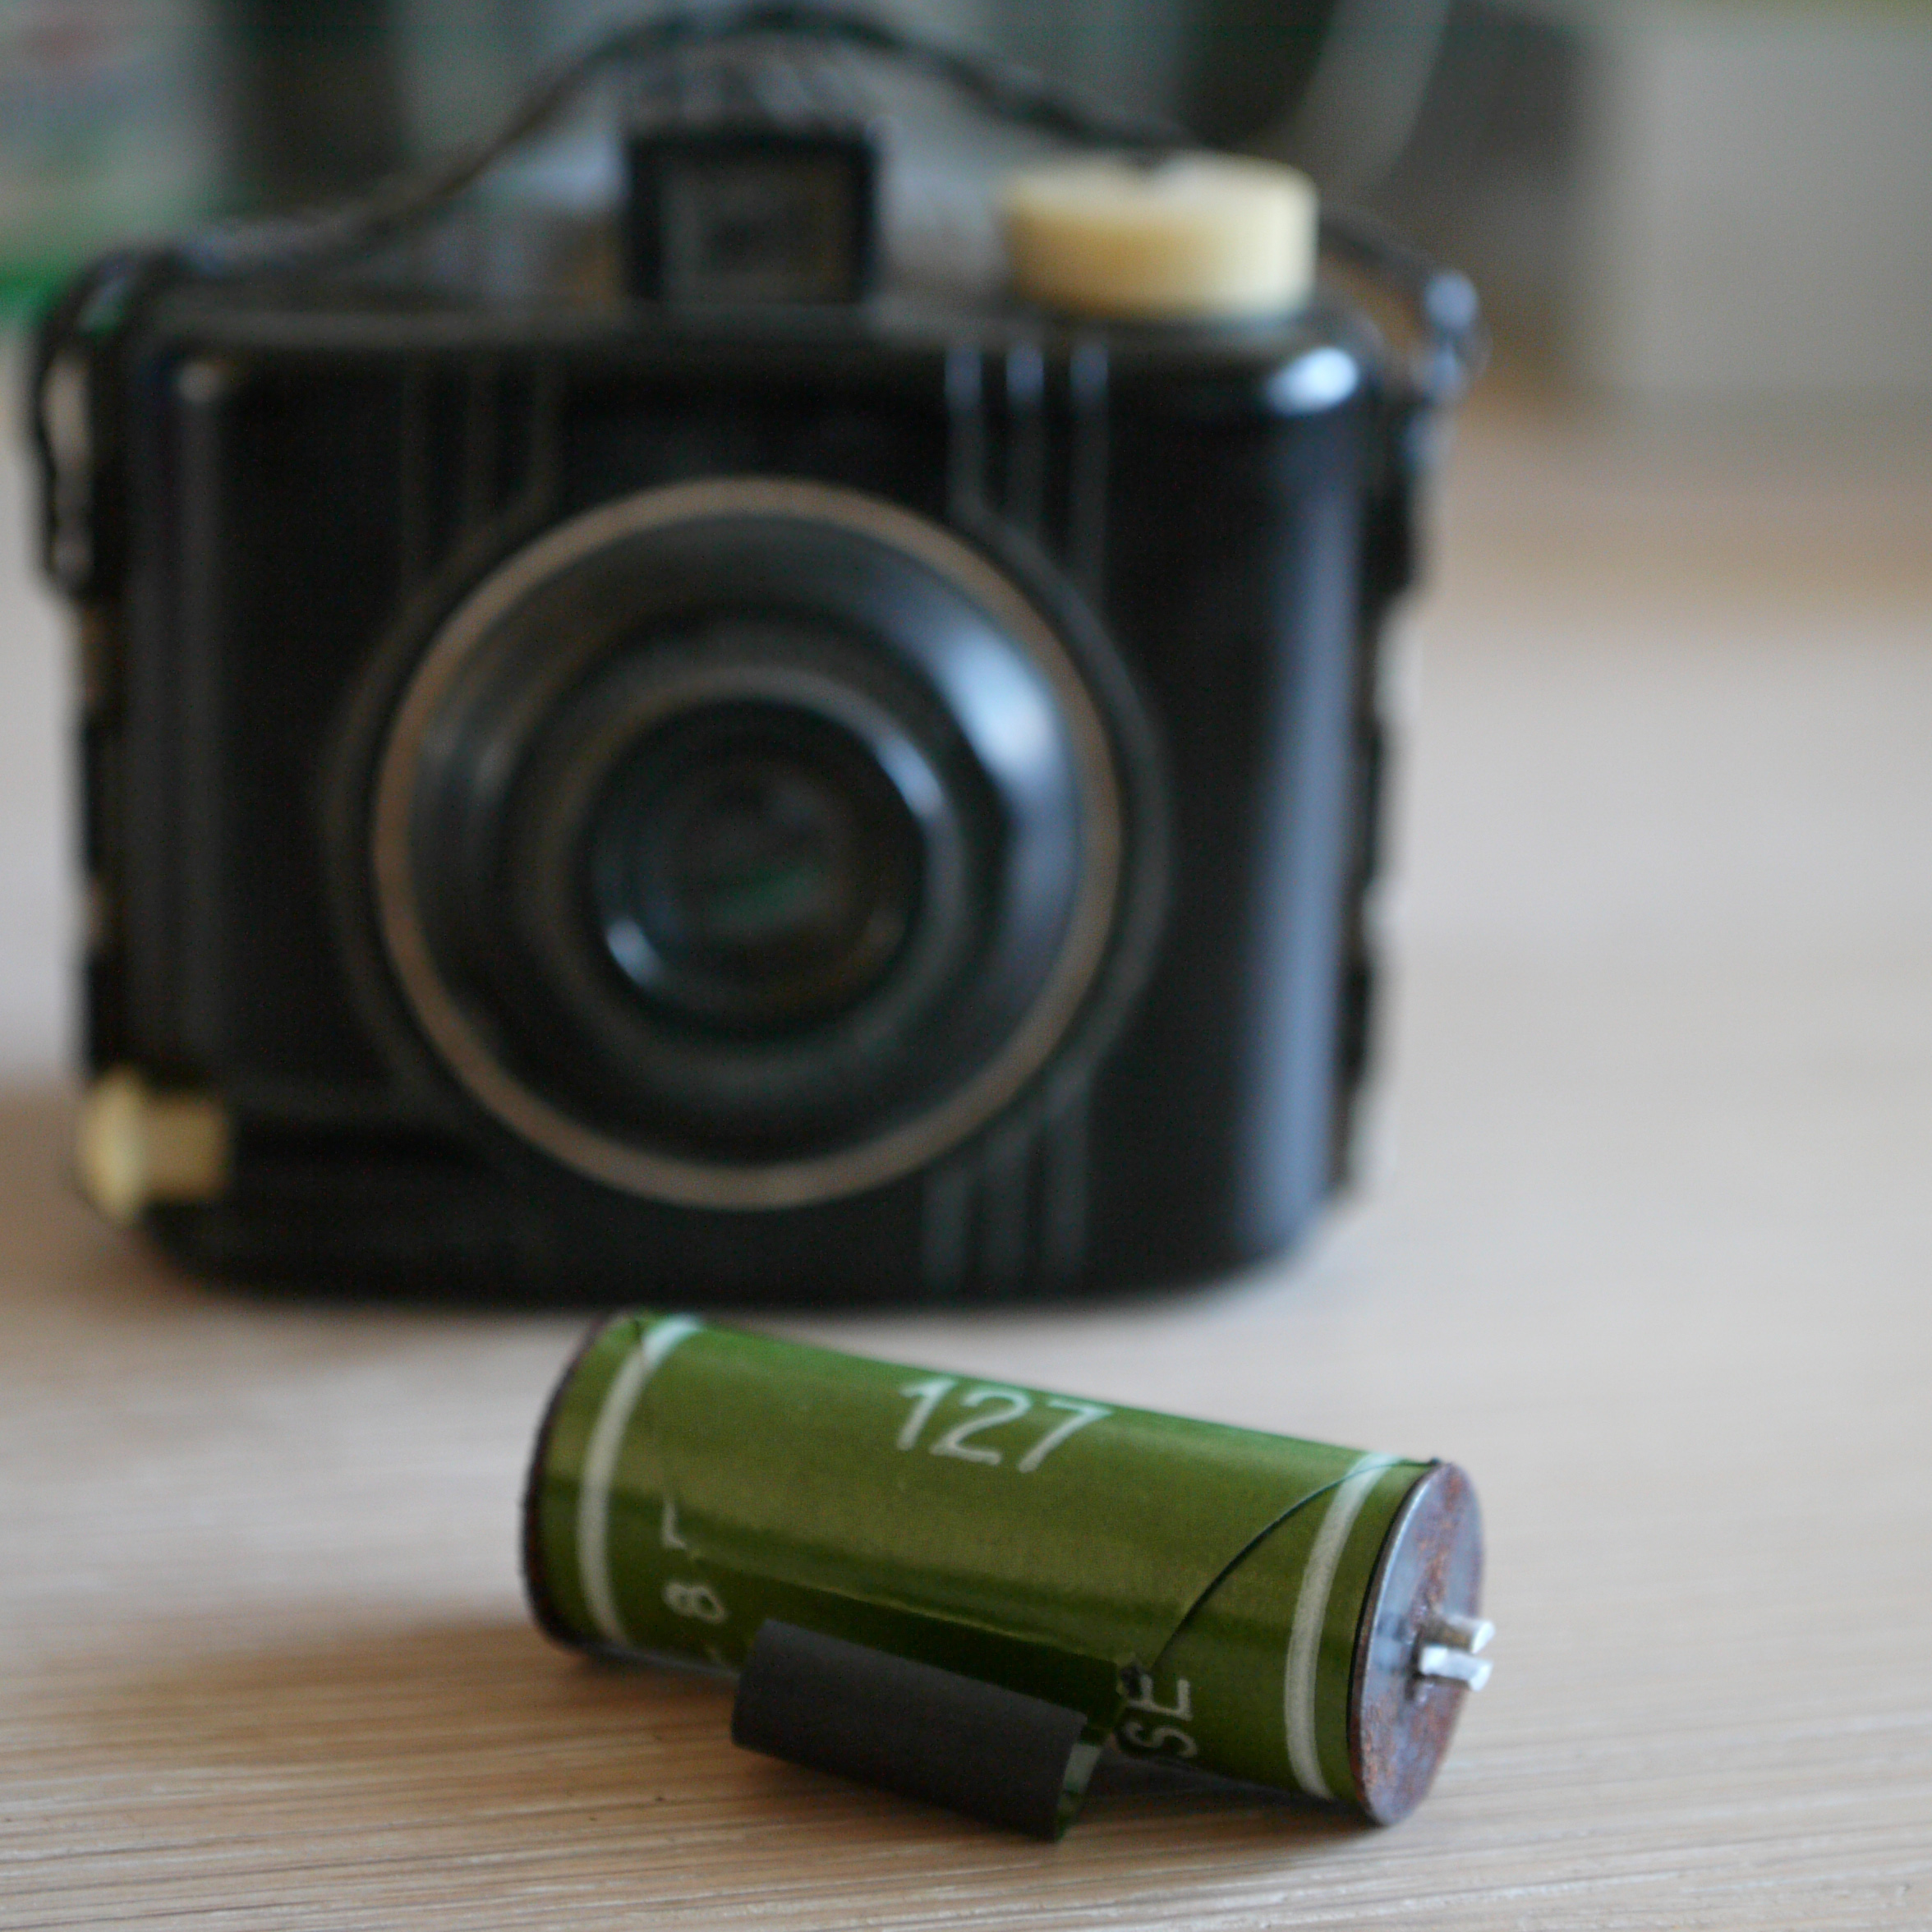 127 film and camera (Pic: Foppe01/Wikimedia Commons)